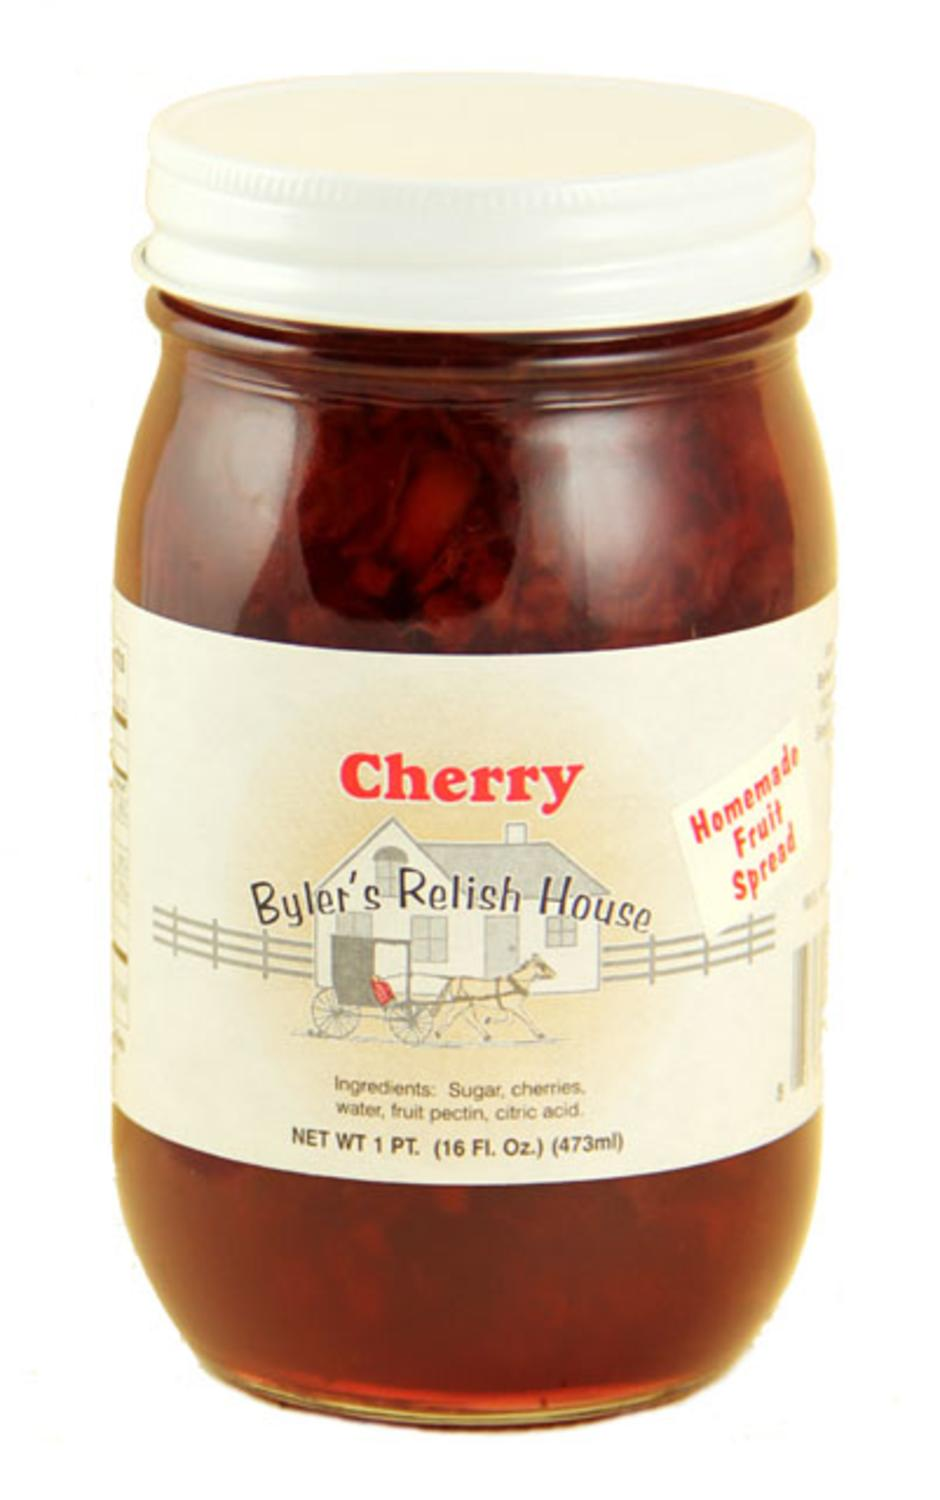 Byler's Relish House Homemade Amish Country Cherry Jam Fruit Spread 16 oz. by Byler's Relish House